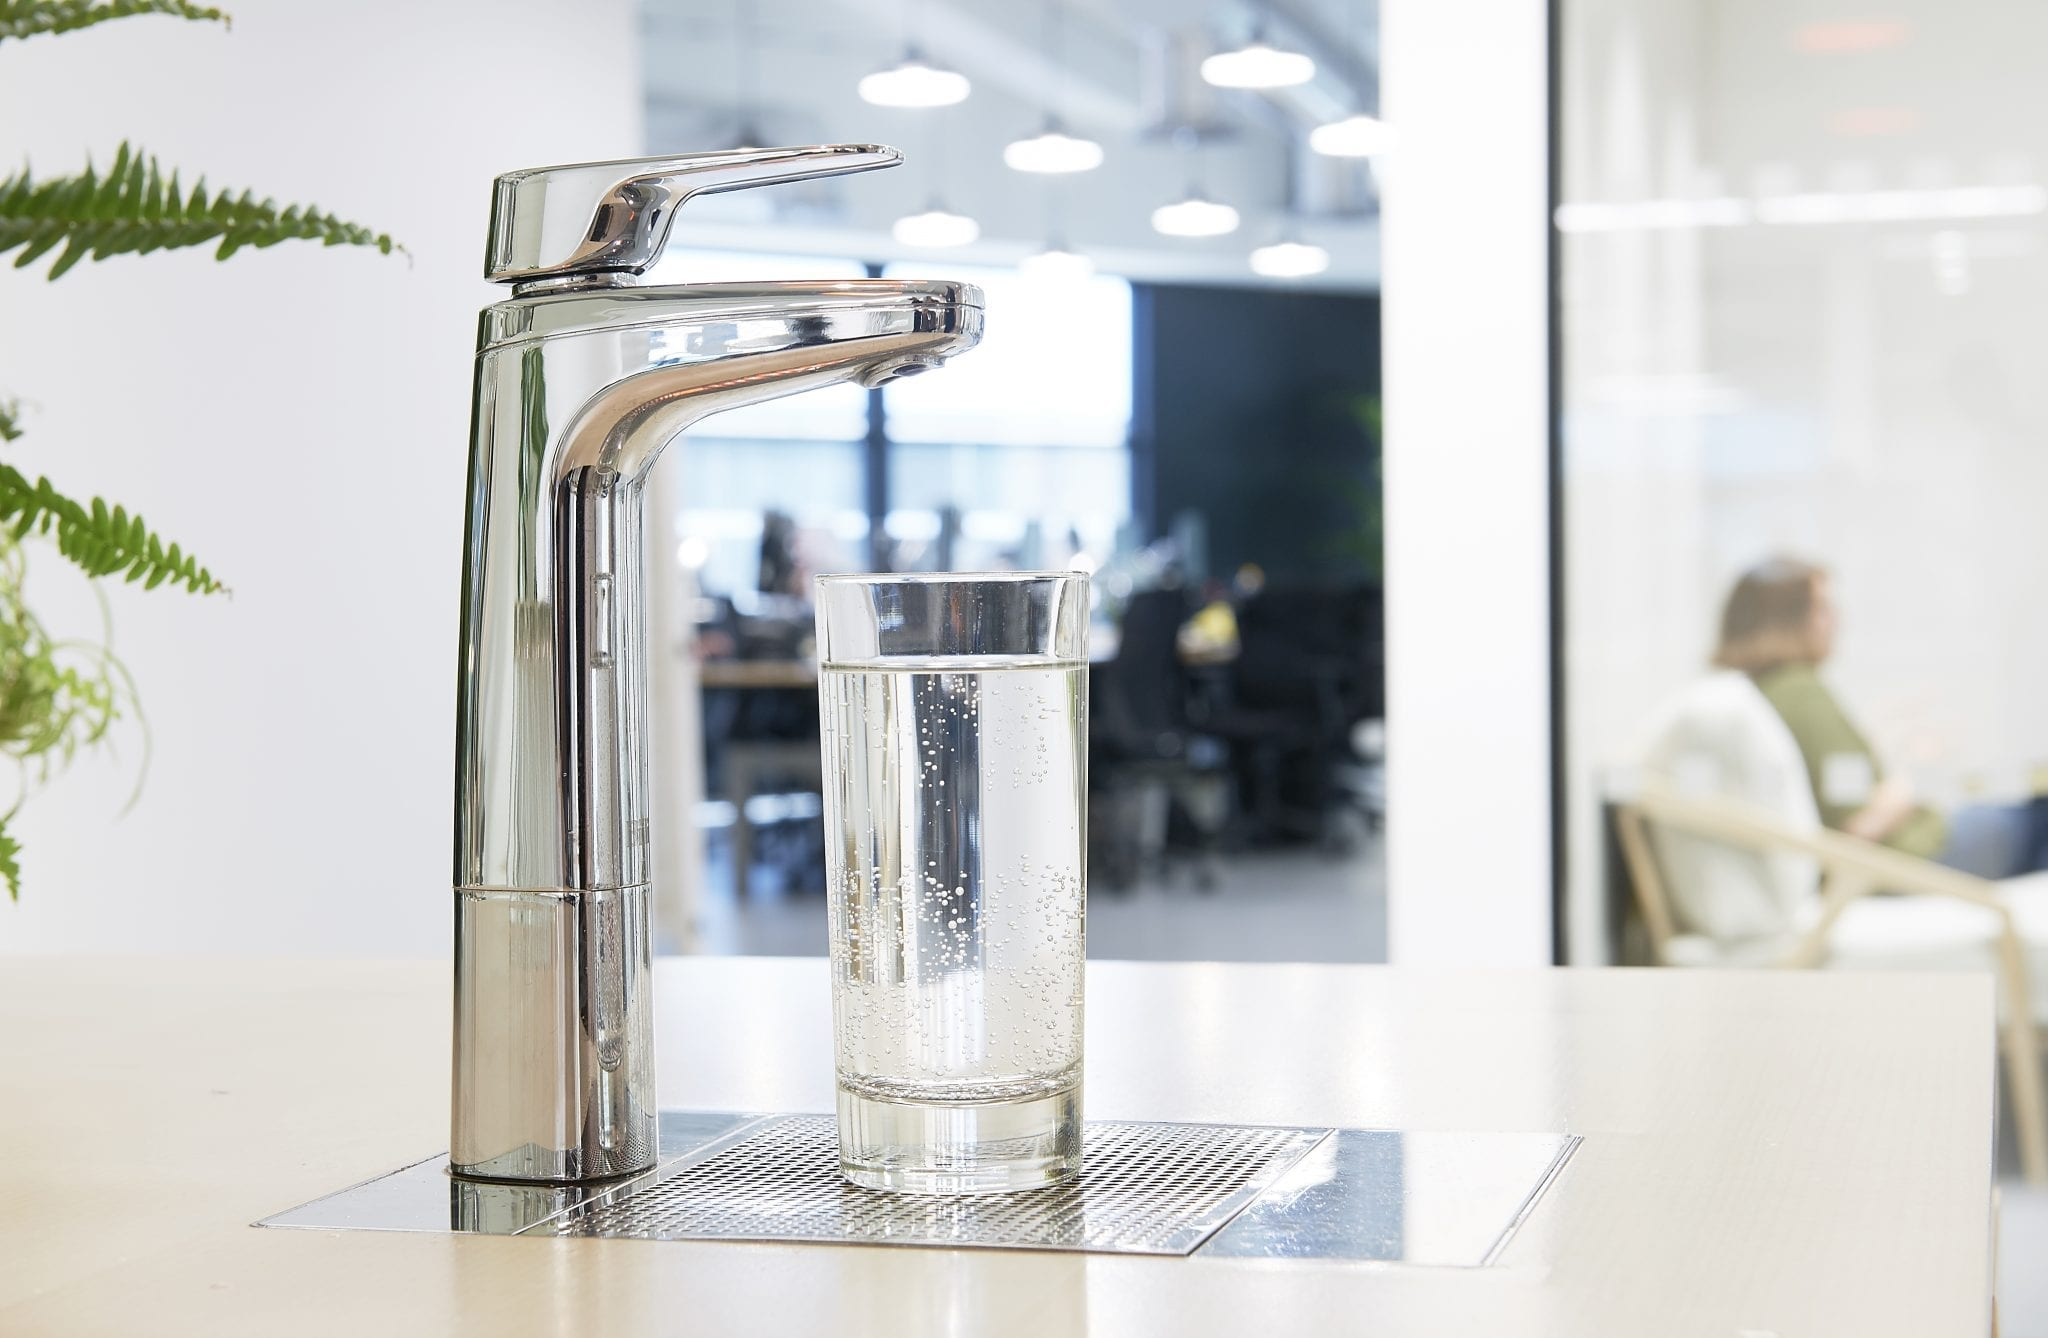 Billi XL Chrome dispenser on riser and font with glass of water